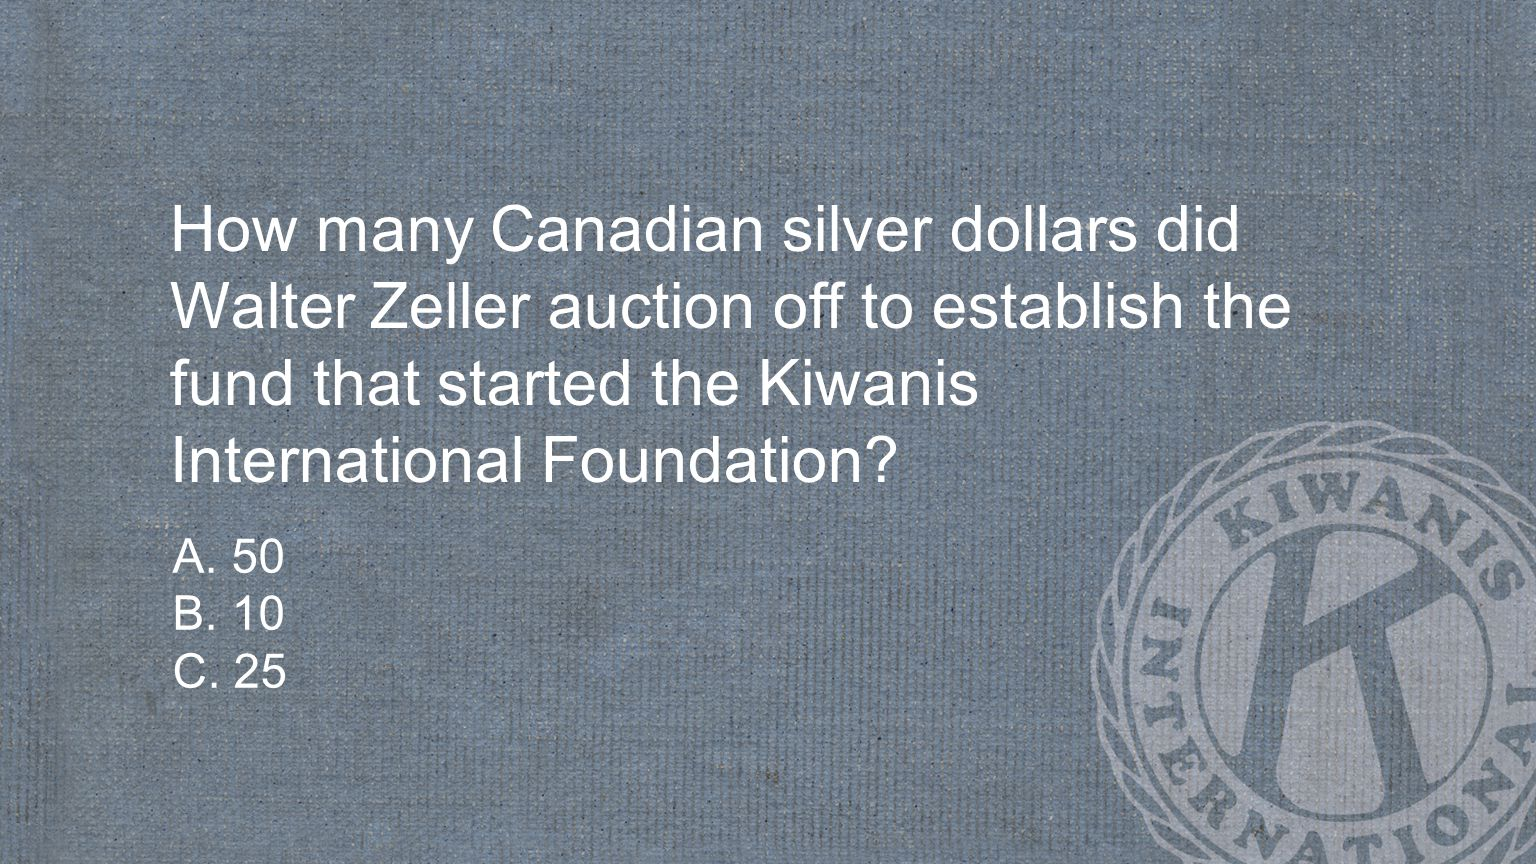 How many Canadian silver dollars did Walter Zeller auction off to establish the fund that started the Kiwanis International Foundation.